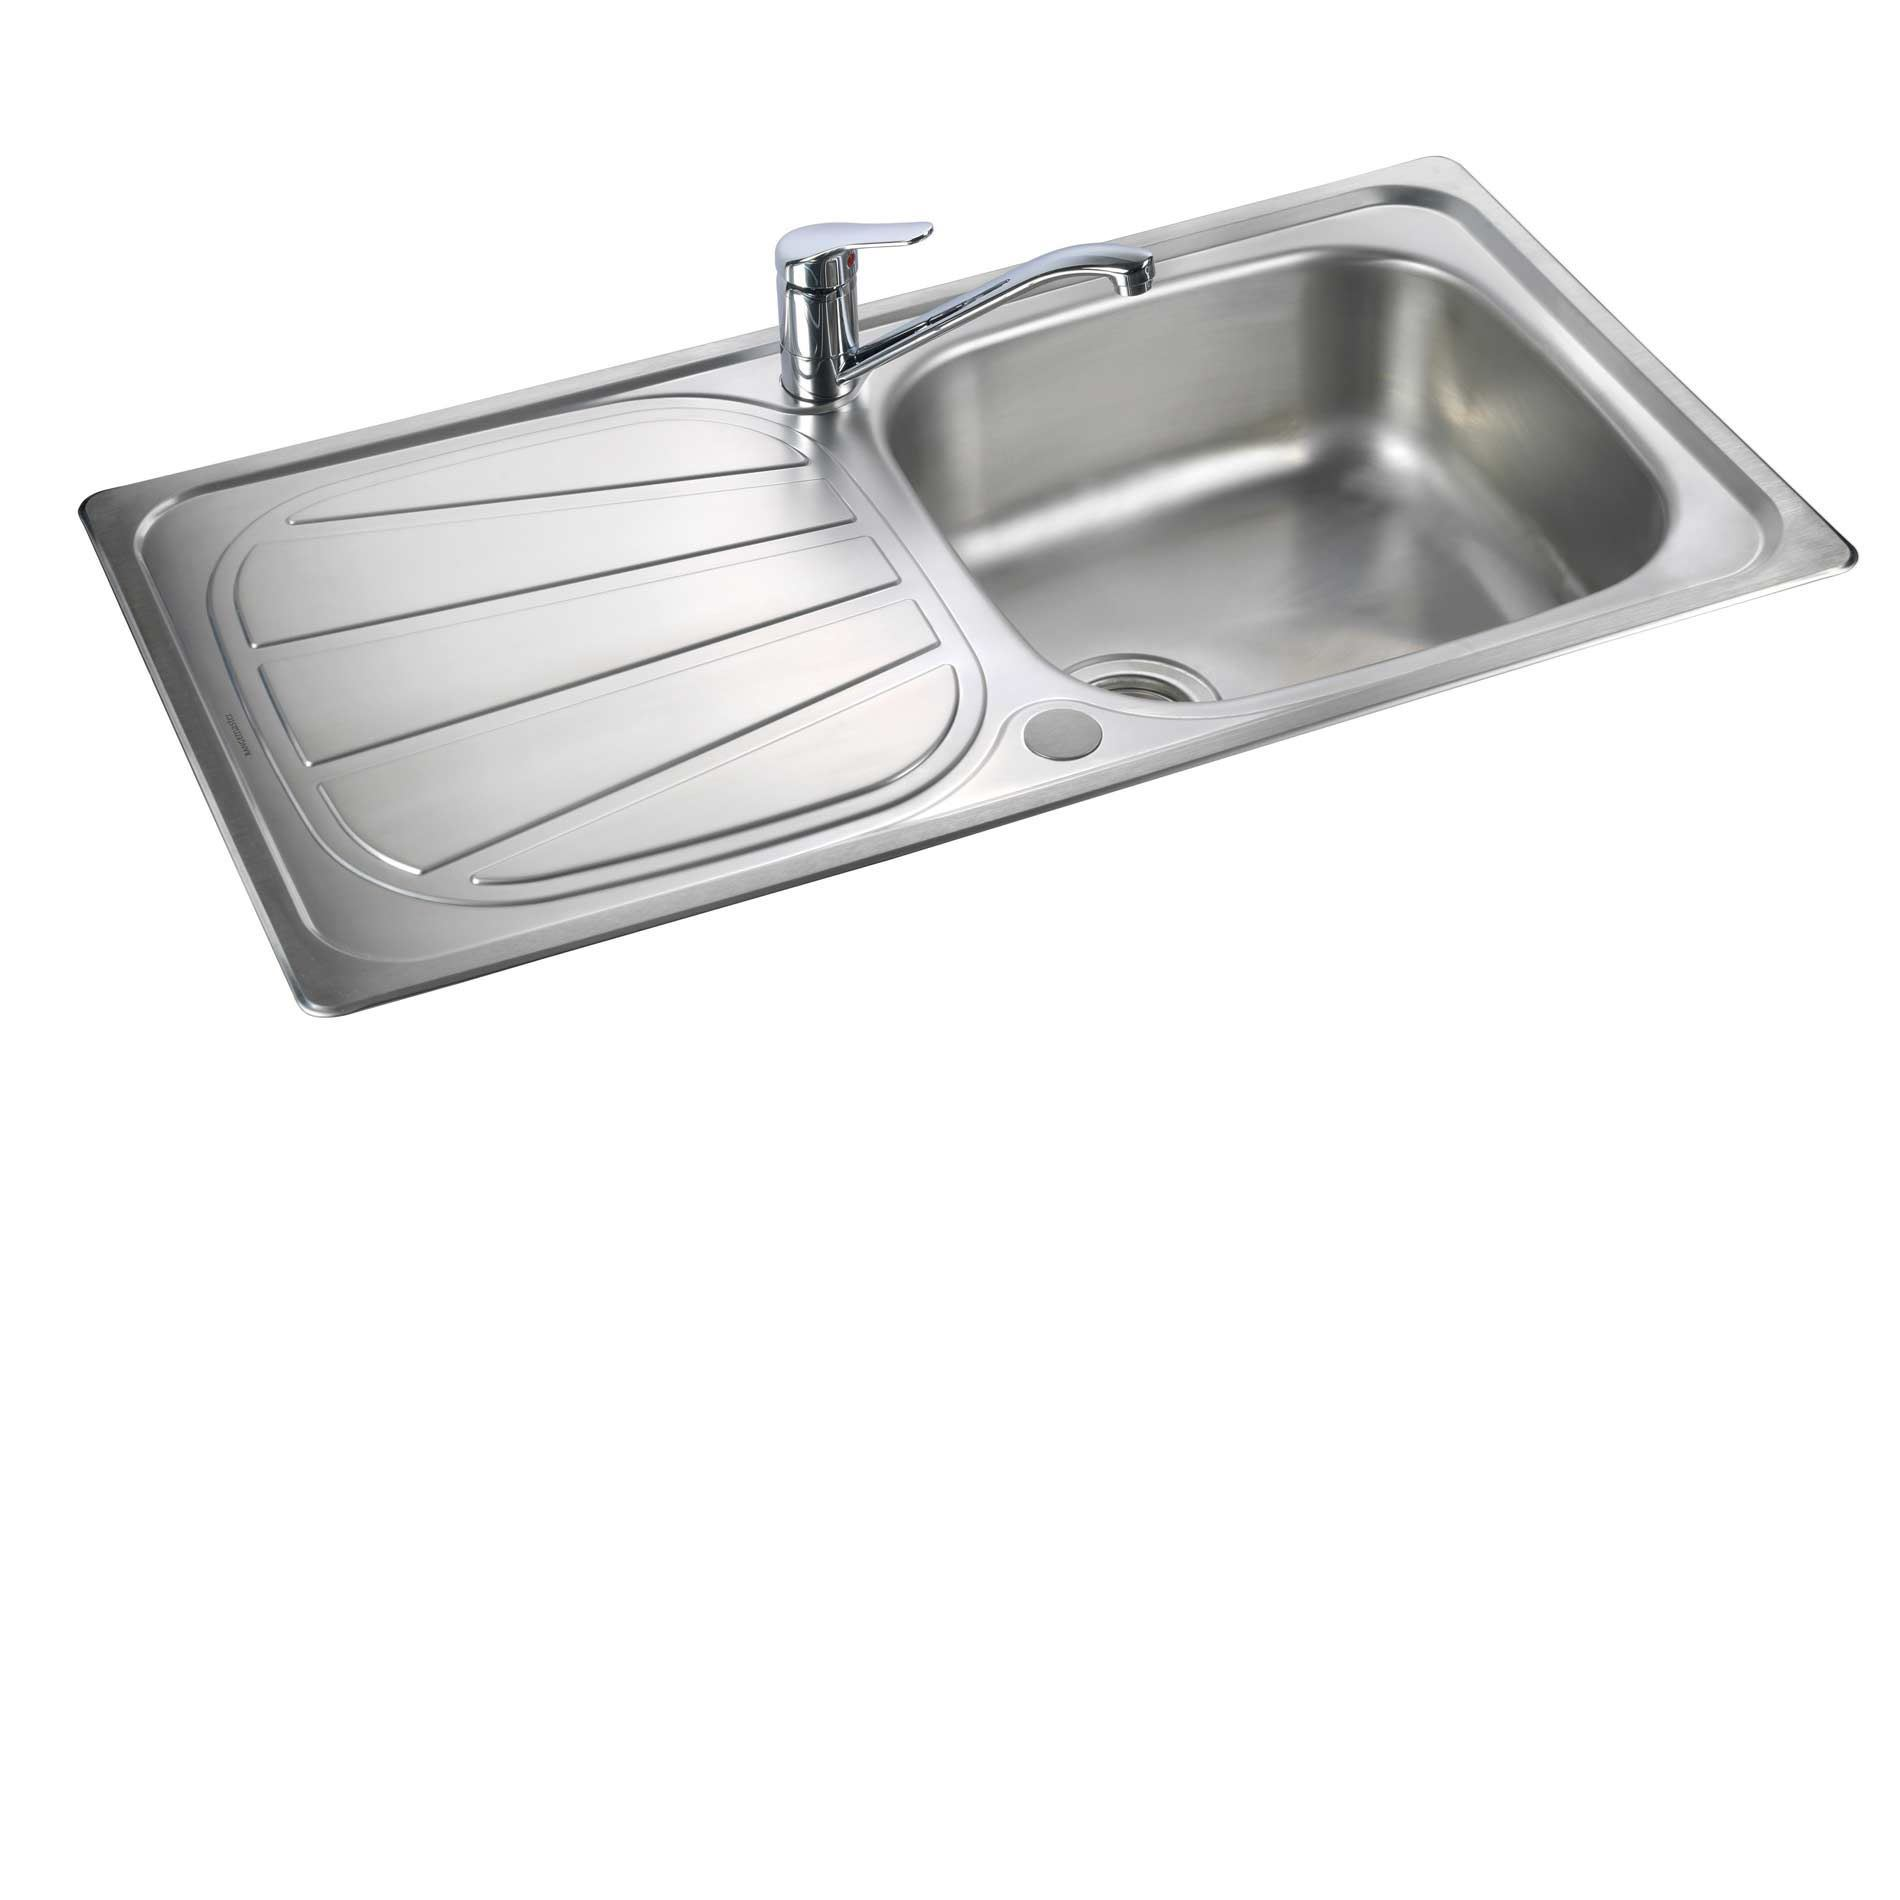 Grades Of Stainless Steel Sinks : ... : Baltimore BL9501 Stainless Steel Sink - Kitchen Sinks & Taps